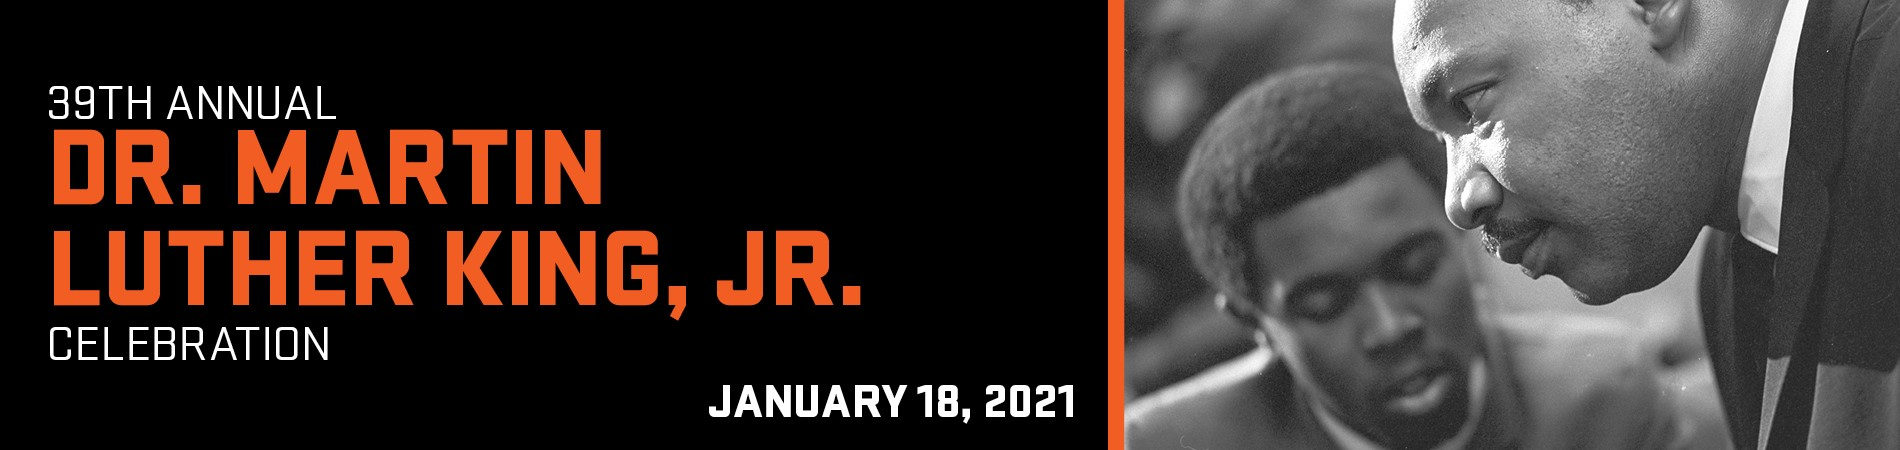 39th Annual Martin Luther King Junior Celebration January 18, 2021